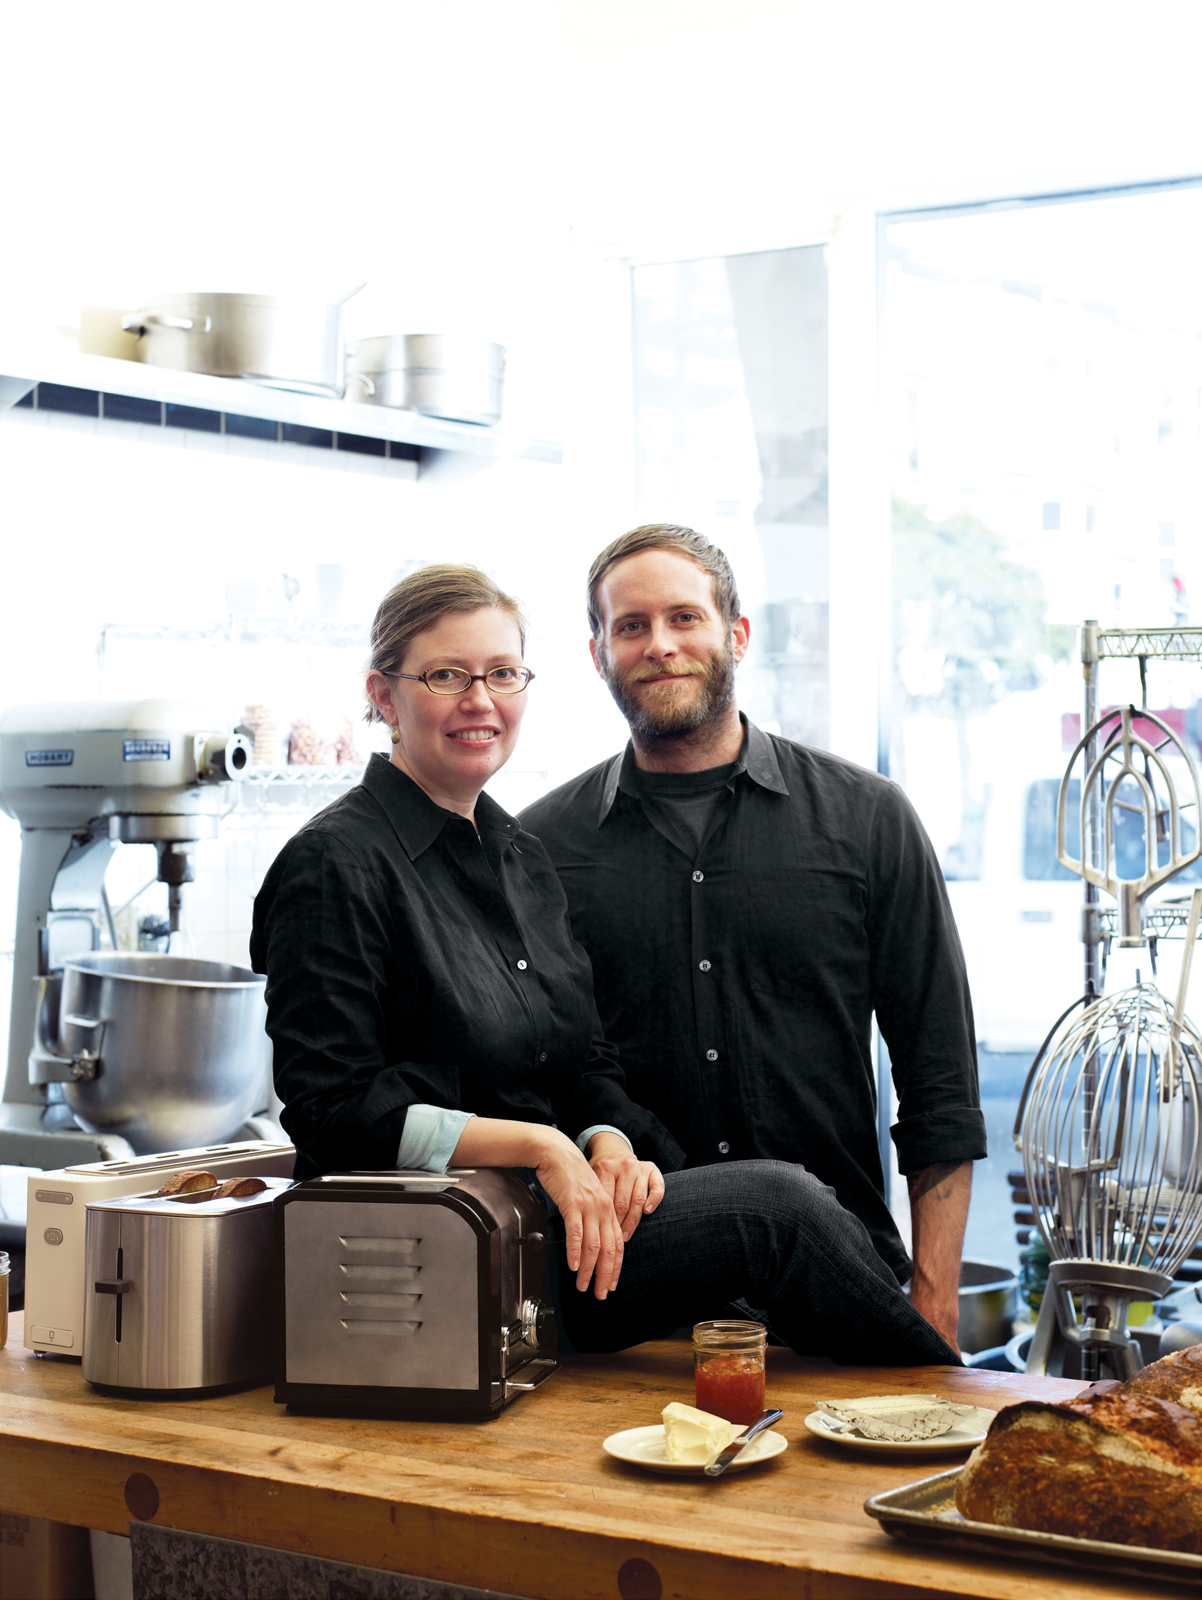 What's the greatest thing since sliced bread? The toaster, of course. Chad Robertson and Elisabeth Prueitt of Tartine Bakery and Bar Tartine in San Francisco help us decide which toasters are worthy of browning their illustrious loaves.